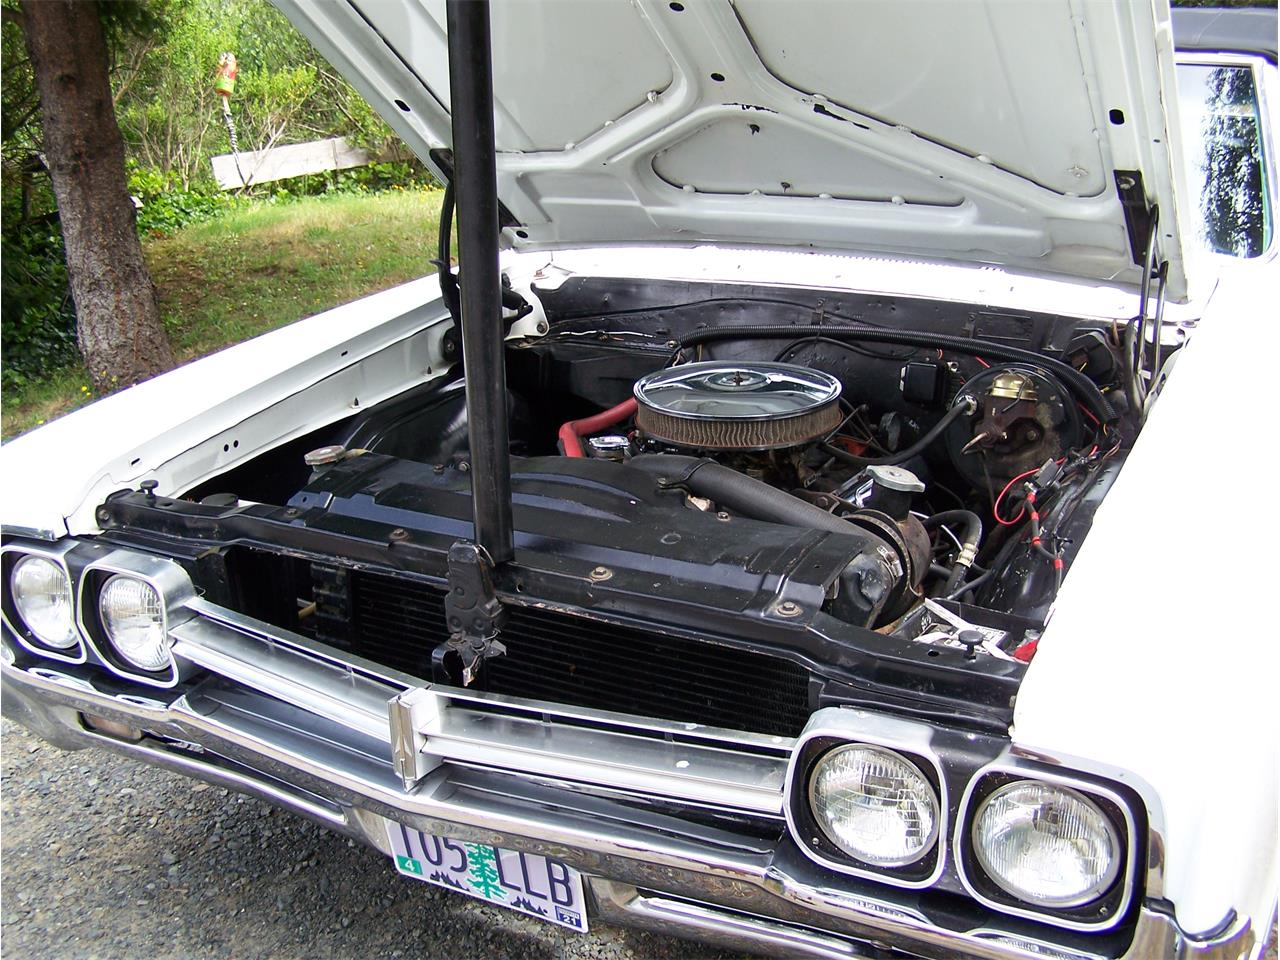 Large Picture of '66 Oldsmobile Cutlass Supreme located in Port Orford Oregon - $15,000.00 - Q0S8